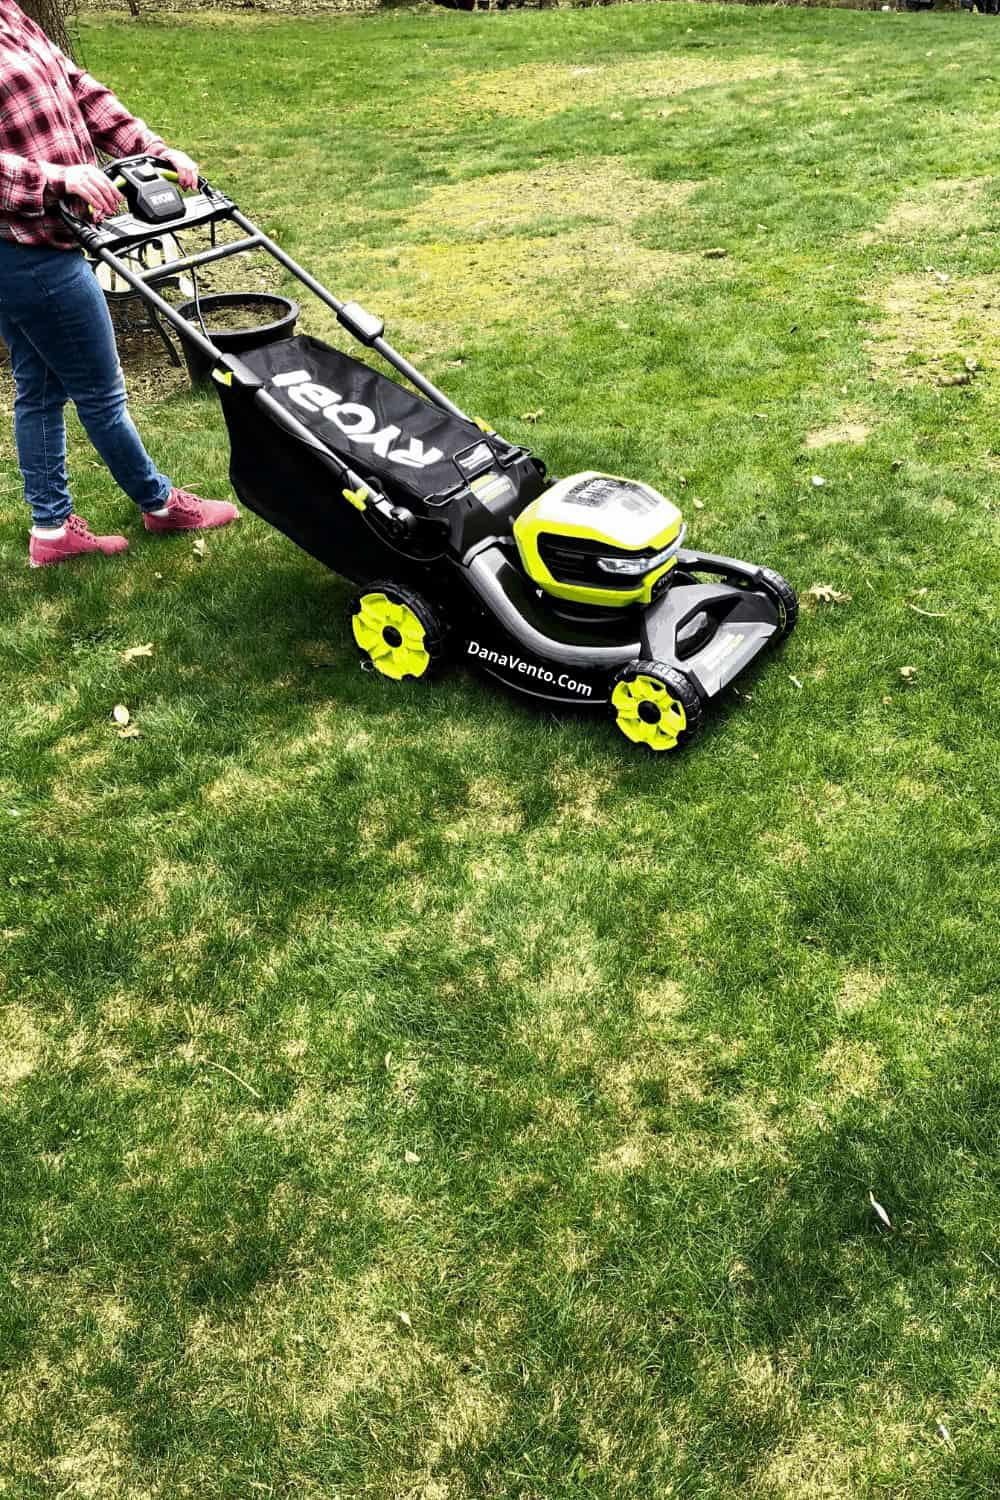 1-self-propelled-mower-to-consider-walking-behind